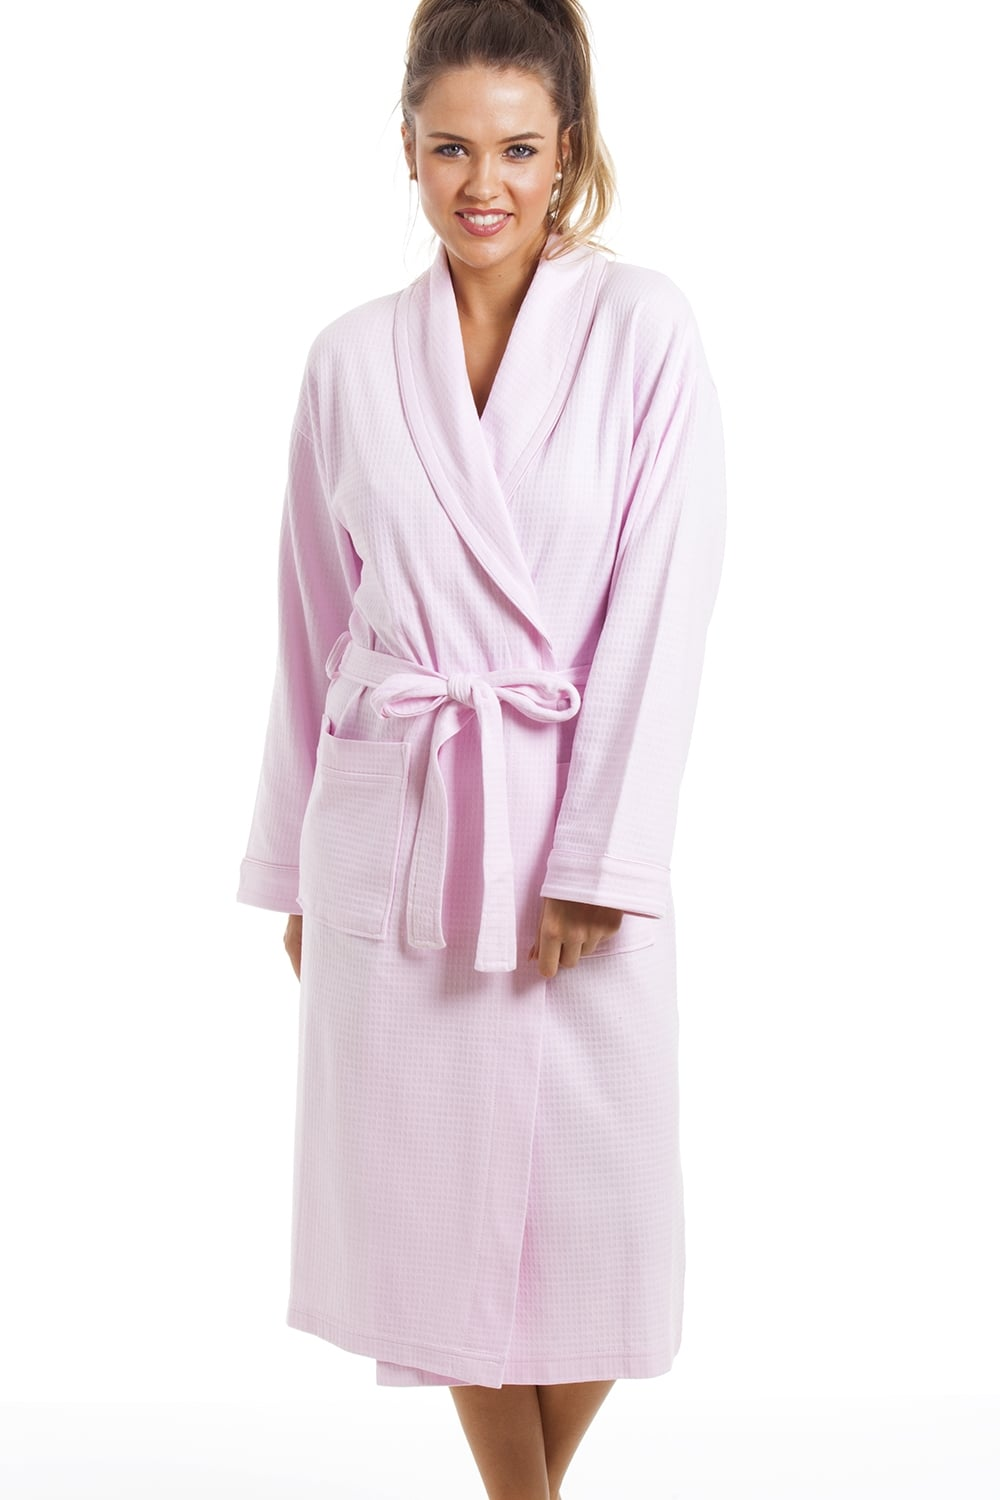 Luxury Lightweight Bathrobe 7VyND